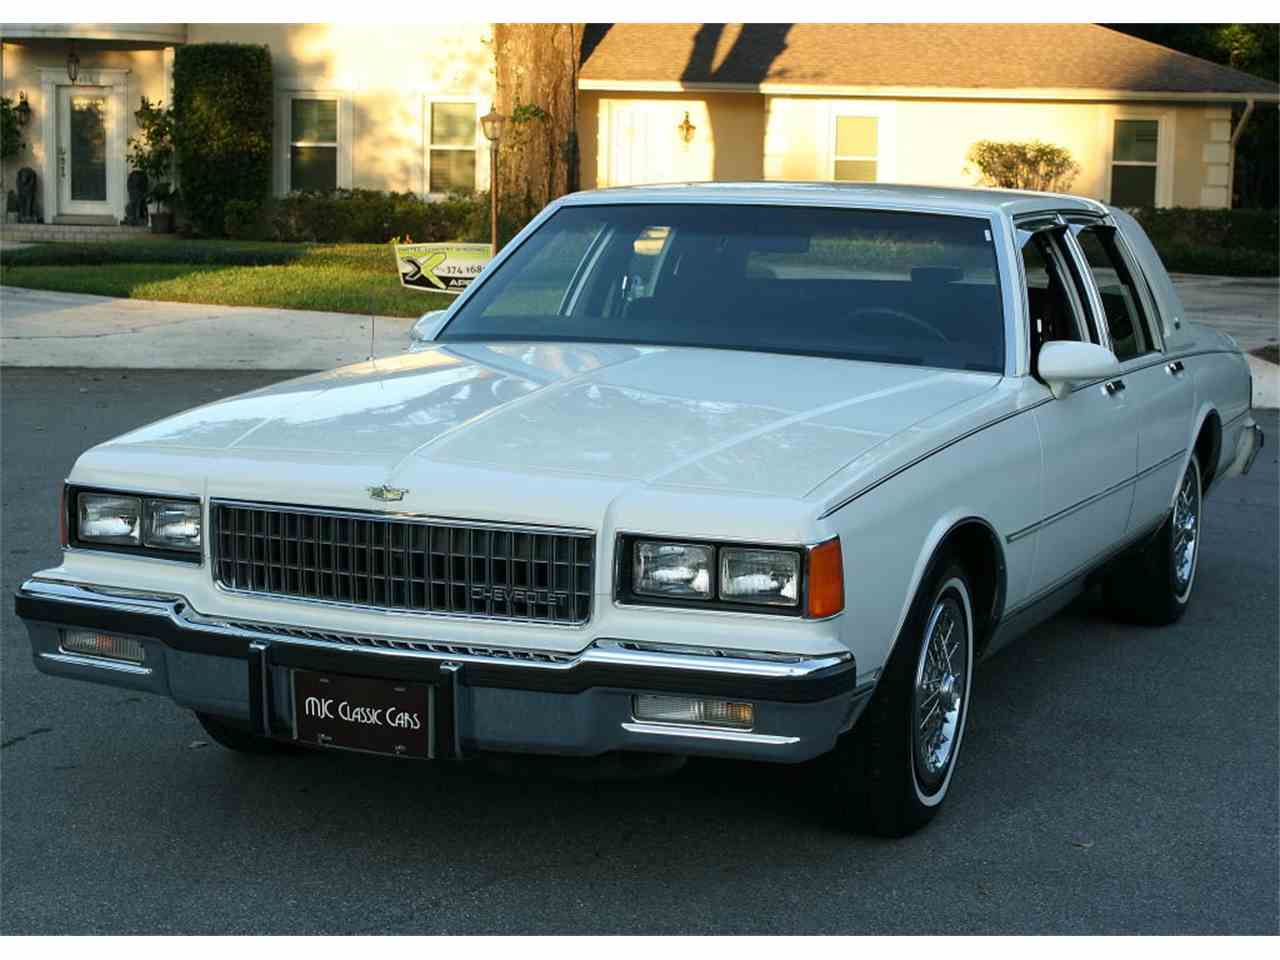 All Chevy 1987 chevrolet caprice classic brougham : Classic Chevrolet Caprice for Sale on ClassicCars.com